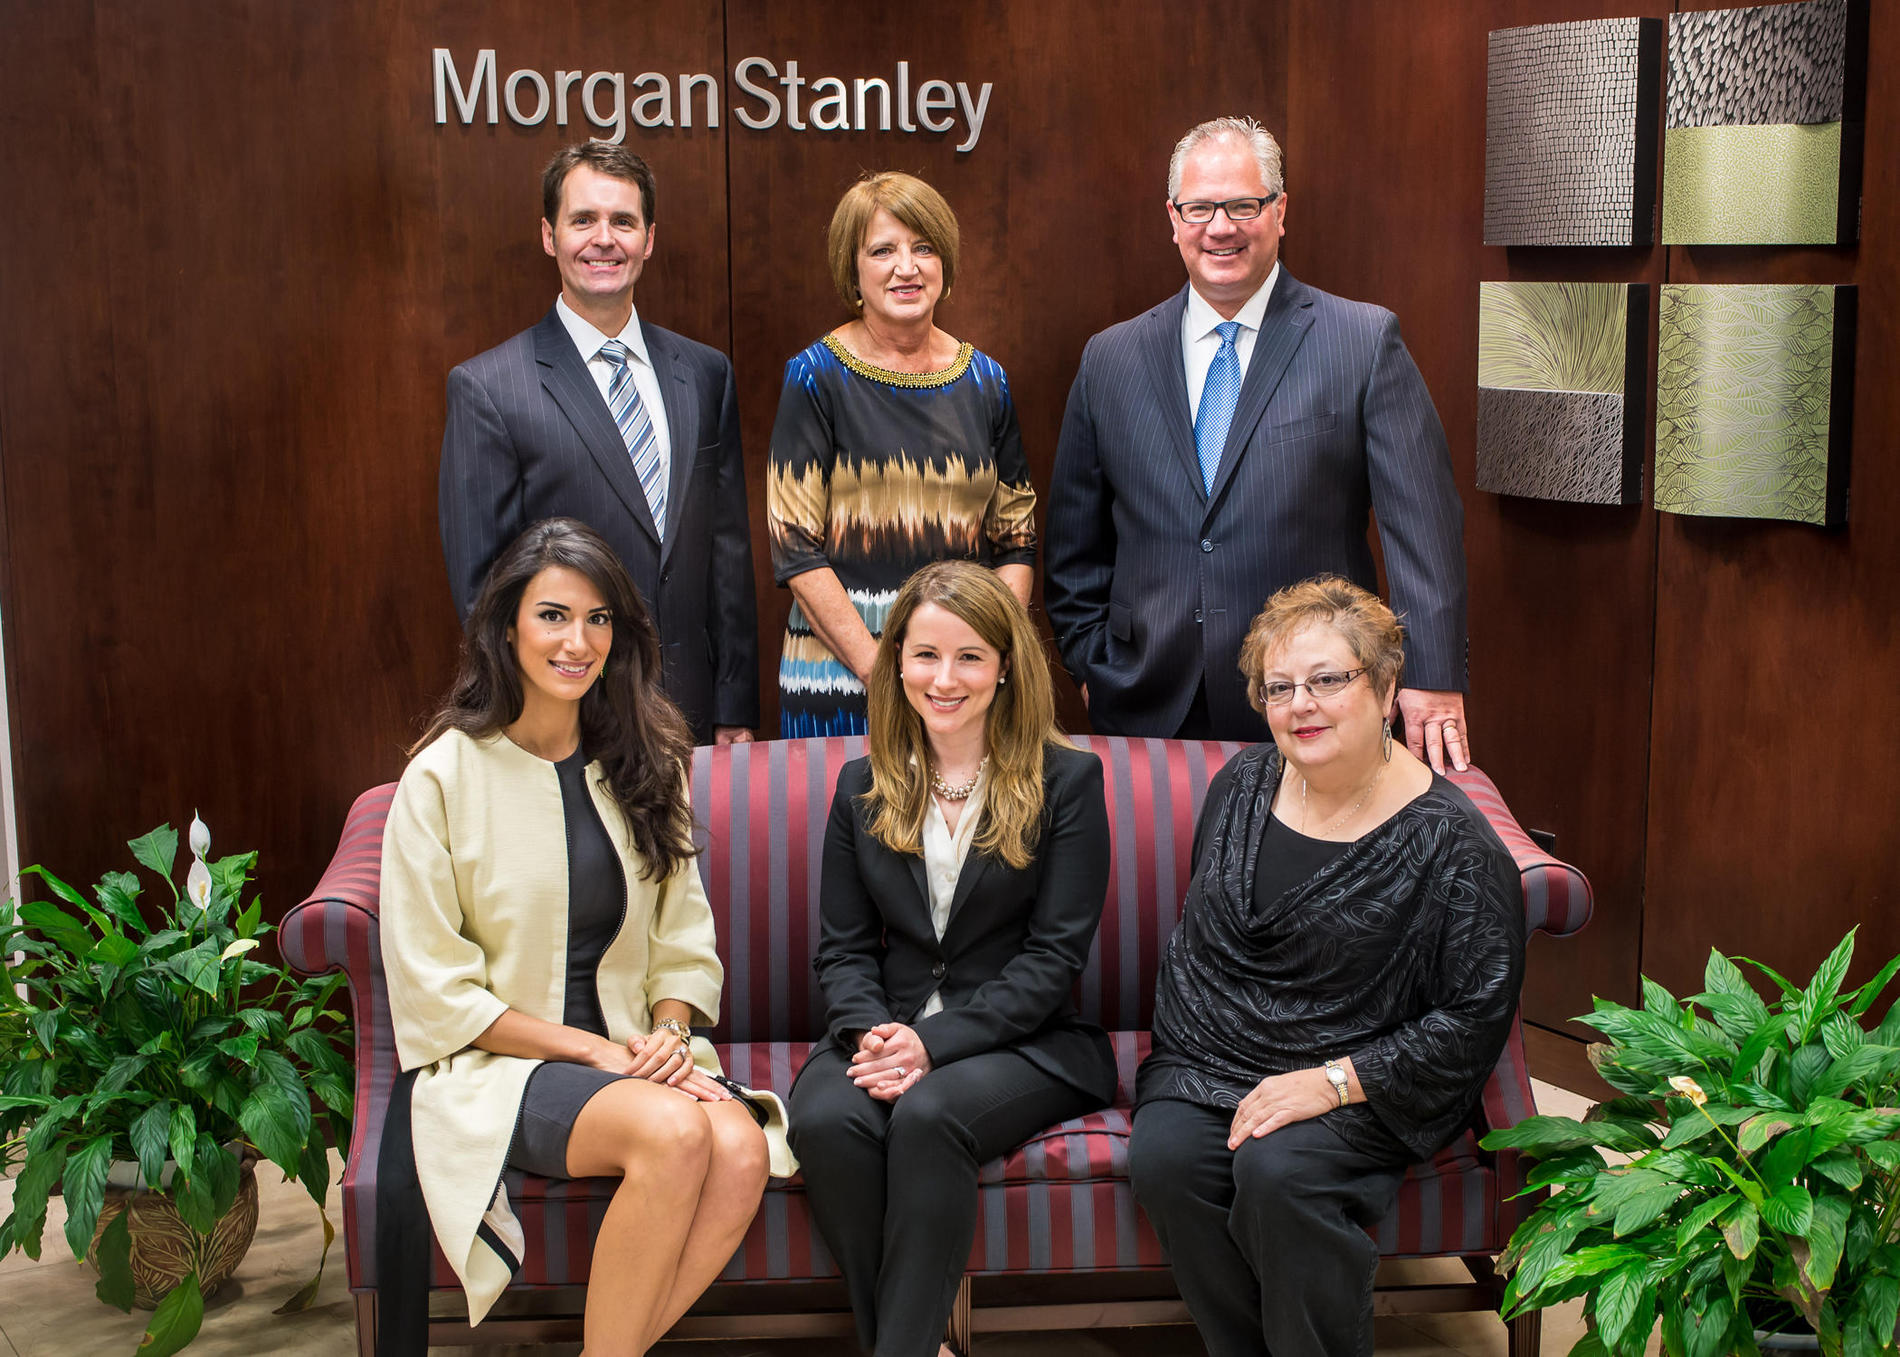 The Waypoint Group | Canfield, OH | Morgan Stanley Wealth